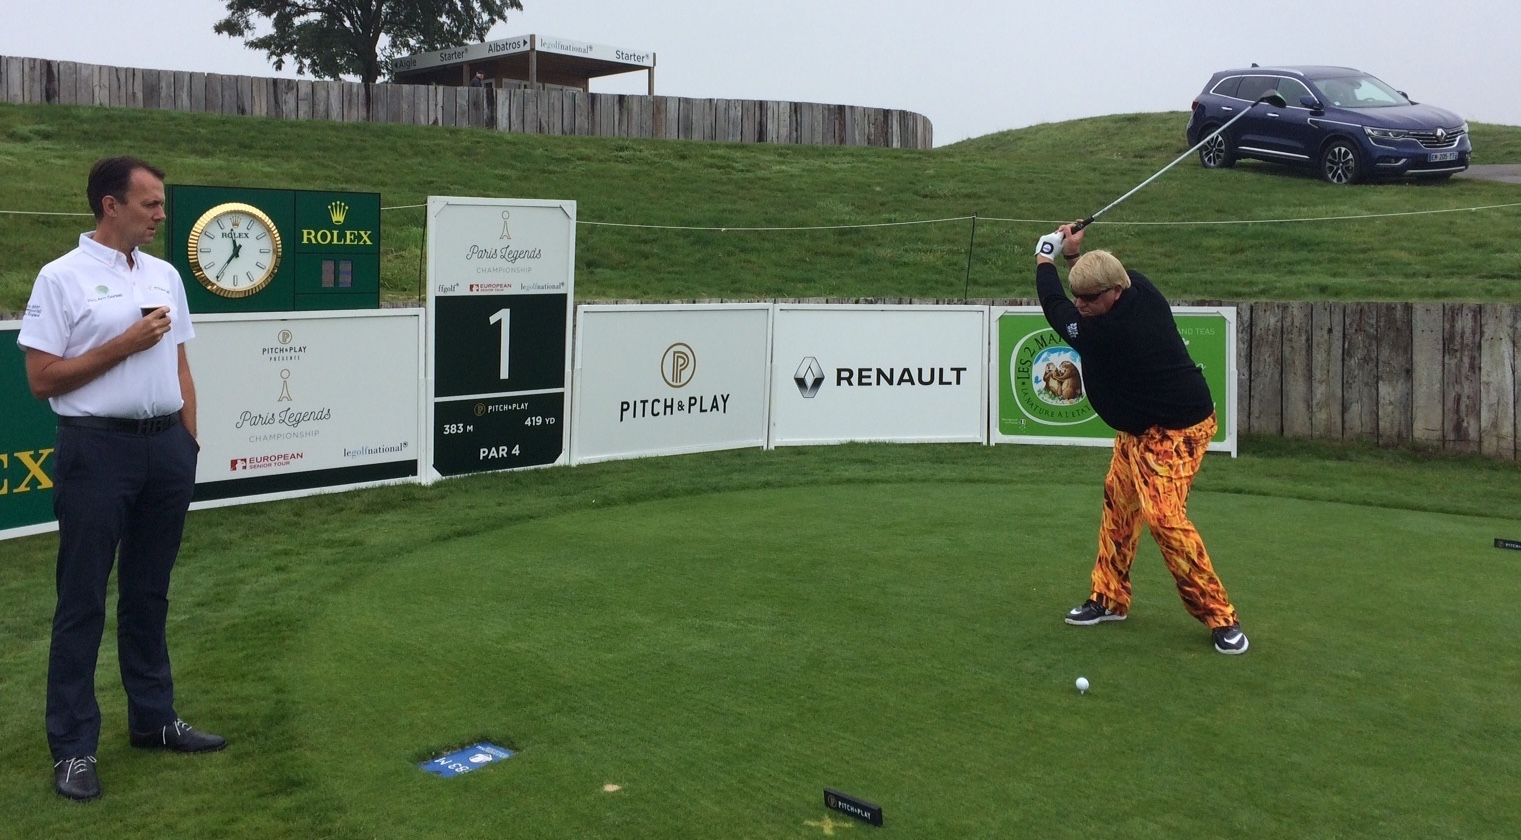 John Daly et David MacLaren au Paris Legends Championship 2017 Crédit photo : Nathalie Vion